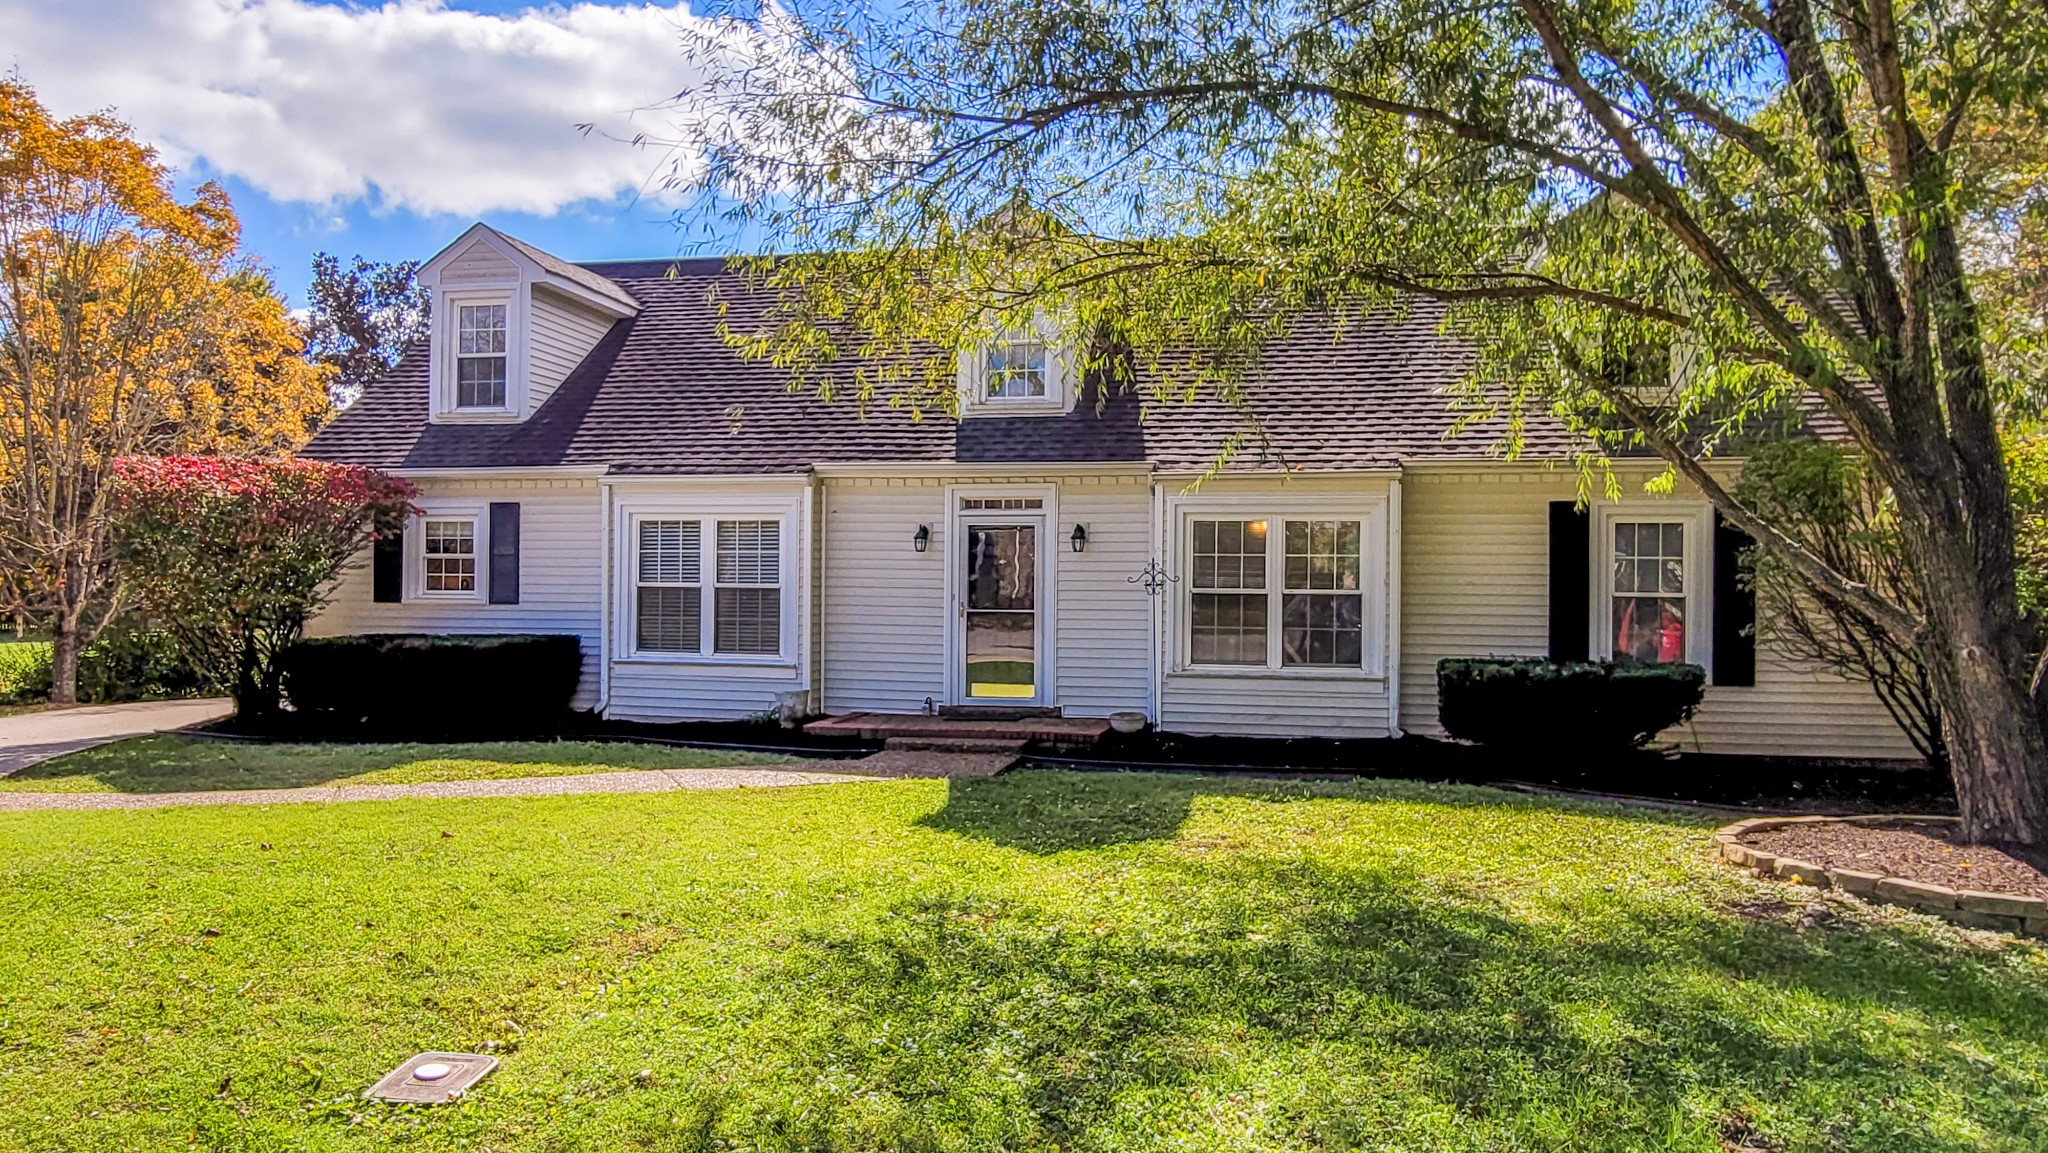 DON'T MISS This Impressive Cape Cod Home on a Cul-De-Sac in Cottonwood in Franklin! * Newly Renovated Kitchen with Marble Tops, New Appliances, Pot Filler, Tiled Backsplash, & Eating Bar * Nice LVP Flooring Throughout the Main Level * Newly Renovated Main-Level Primary Bath with Beautiful Tiled Frameless Glass Shower * HUGE 2nd Level with Large Bedroom, Walk-In Closet, Full Bath, & Bonus Room * Private Backyard with Common Area Behind